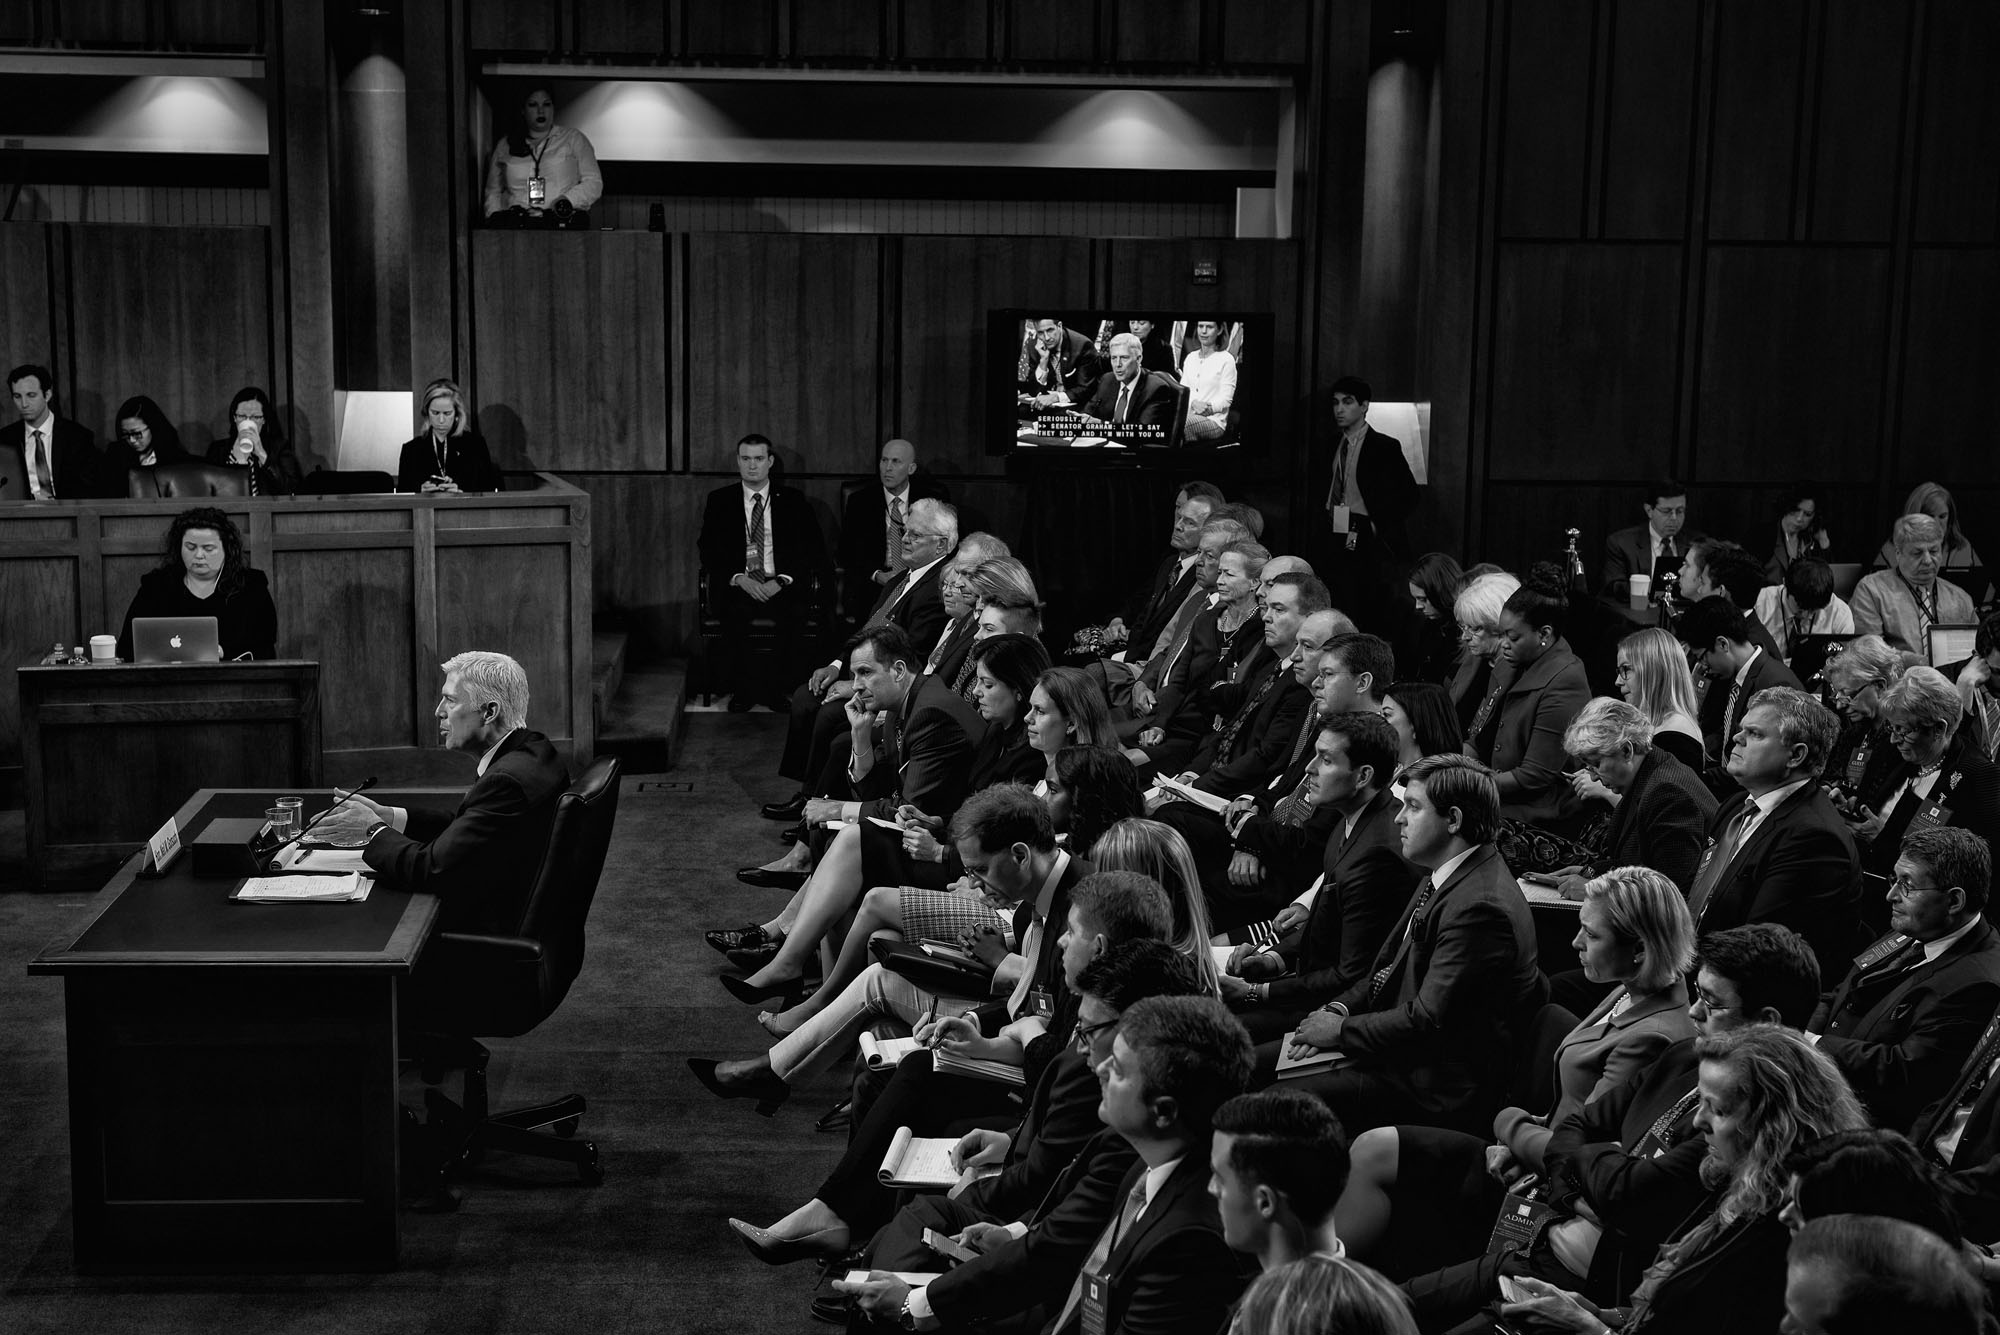 Judge Neil Gorsuch testifies during the third day of his Supreme Court confirmation hearing before the Senate Judiciary Committee on March 22, 2017.